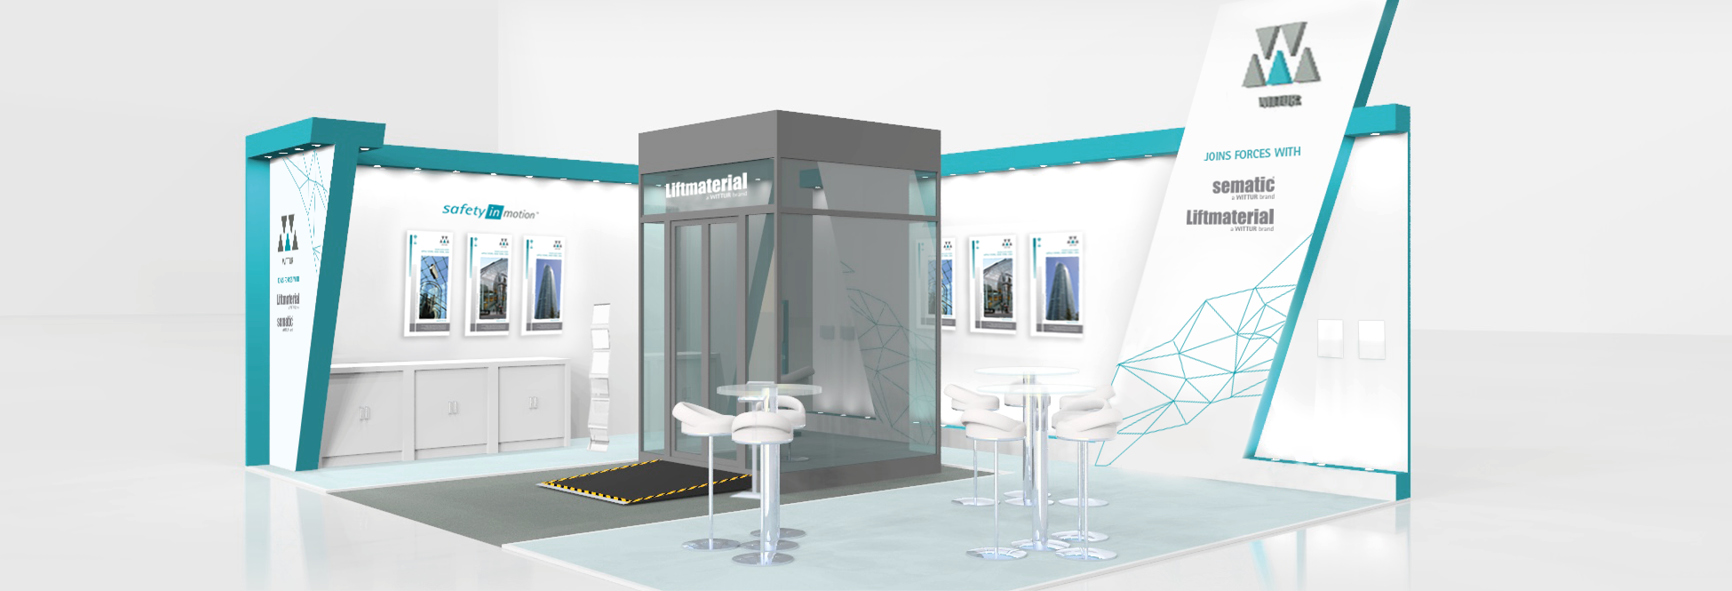 exhibition design, custom exhibition design